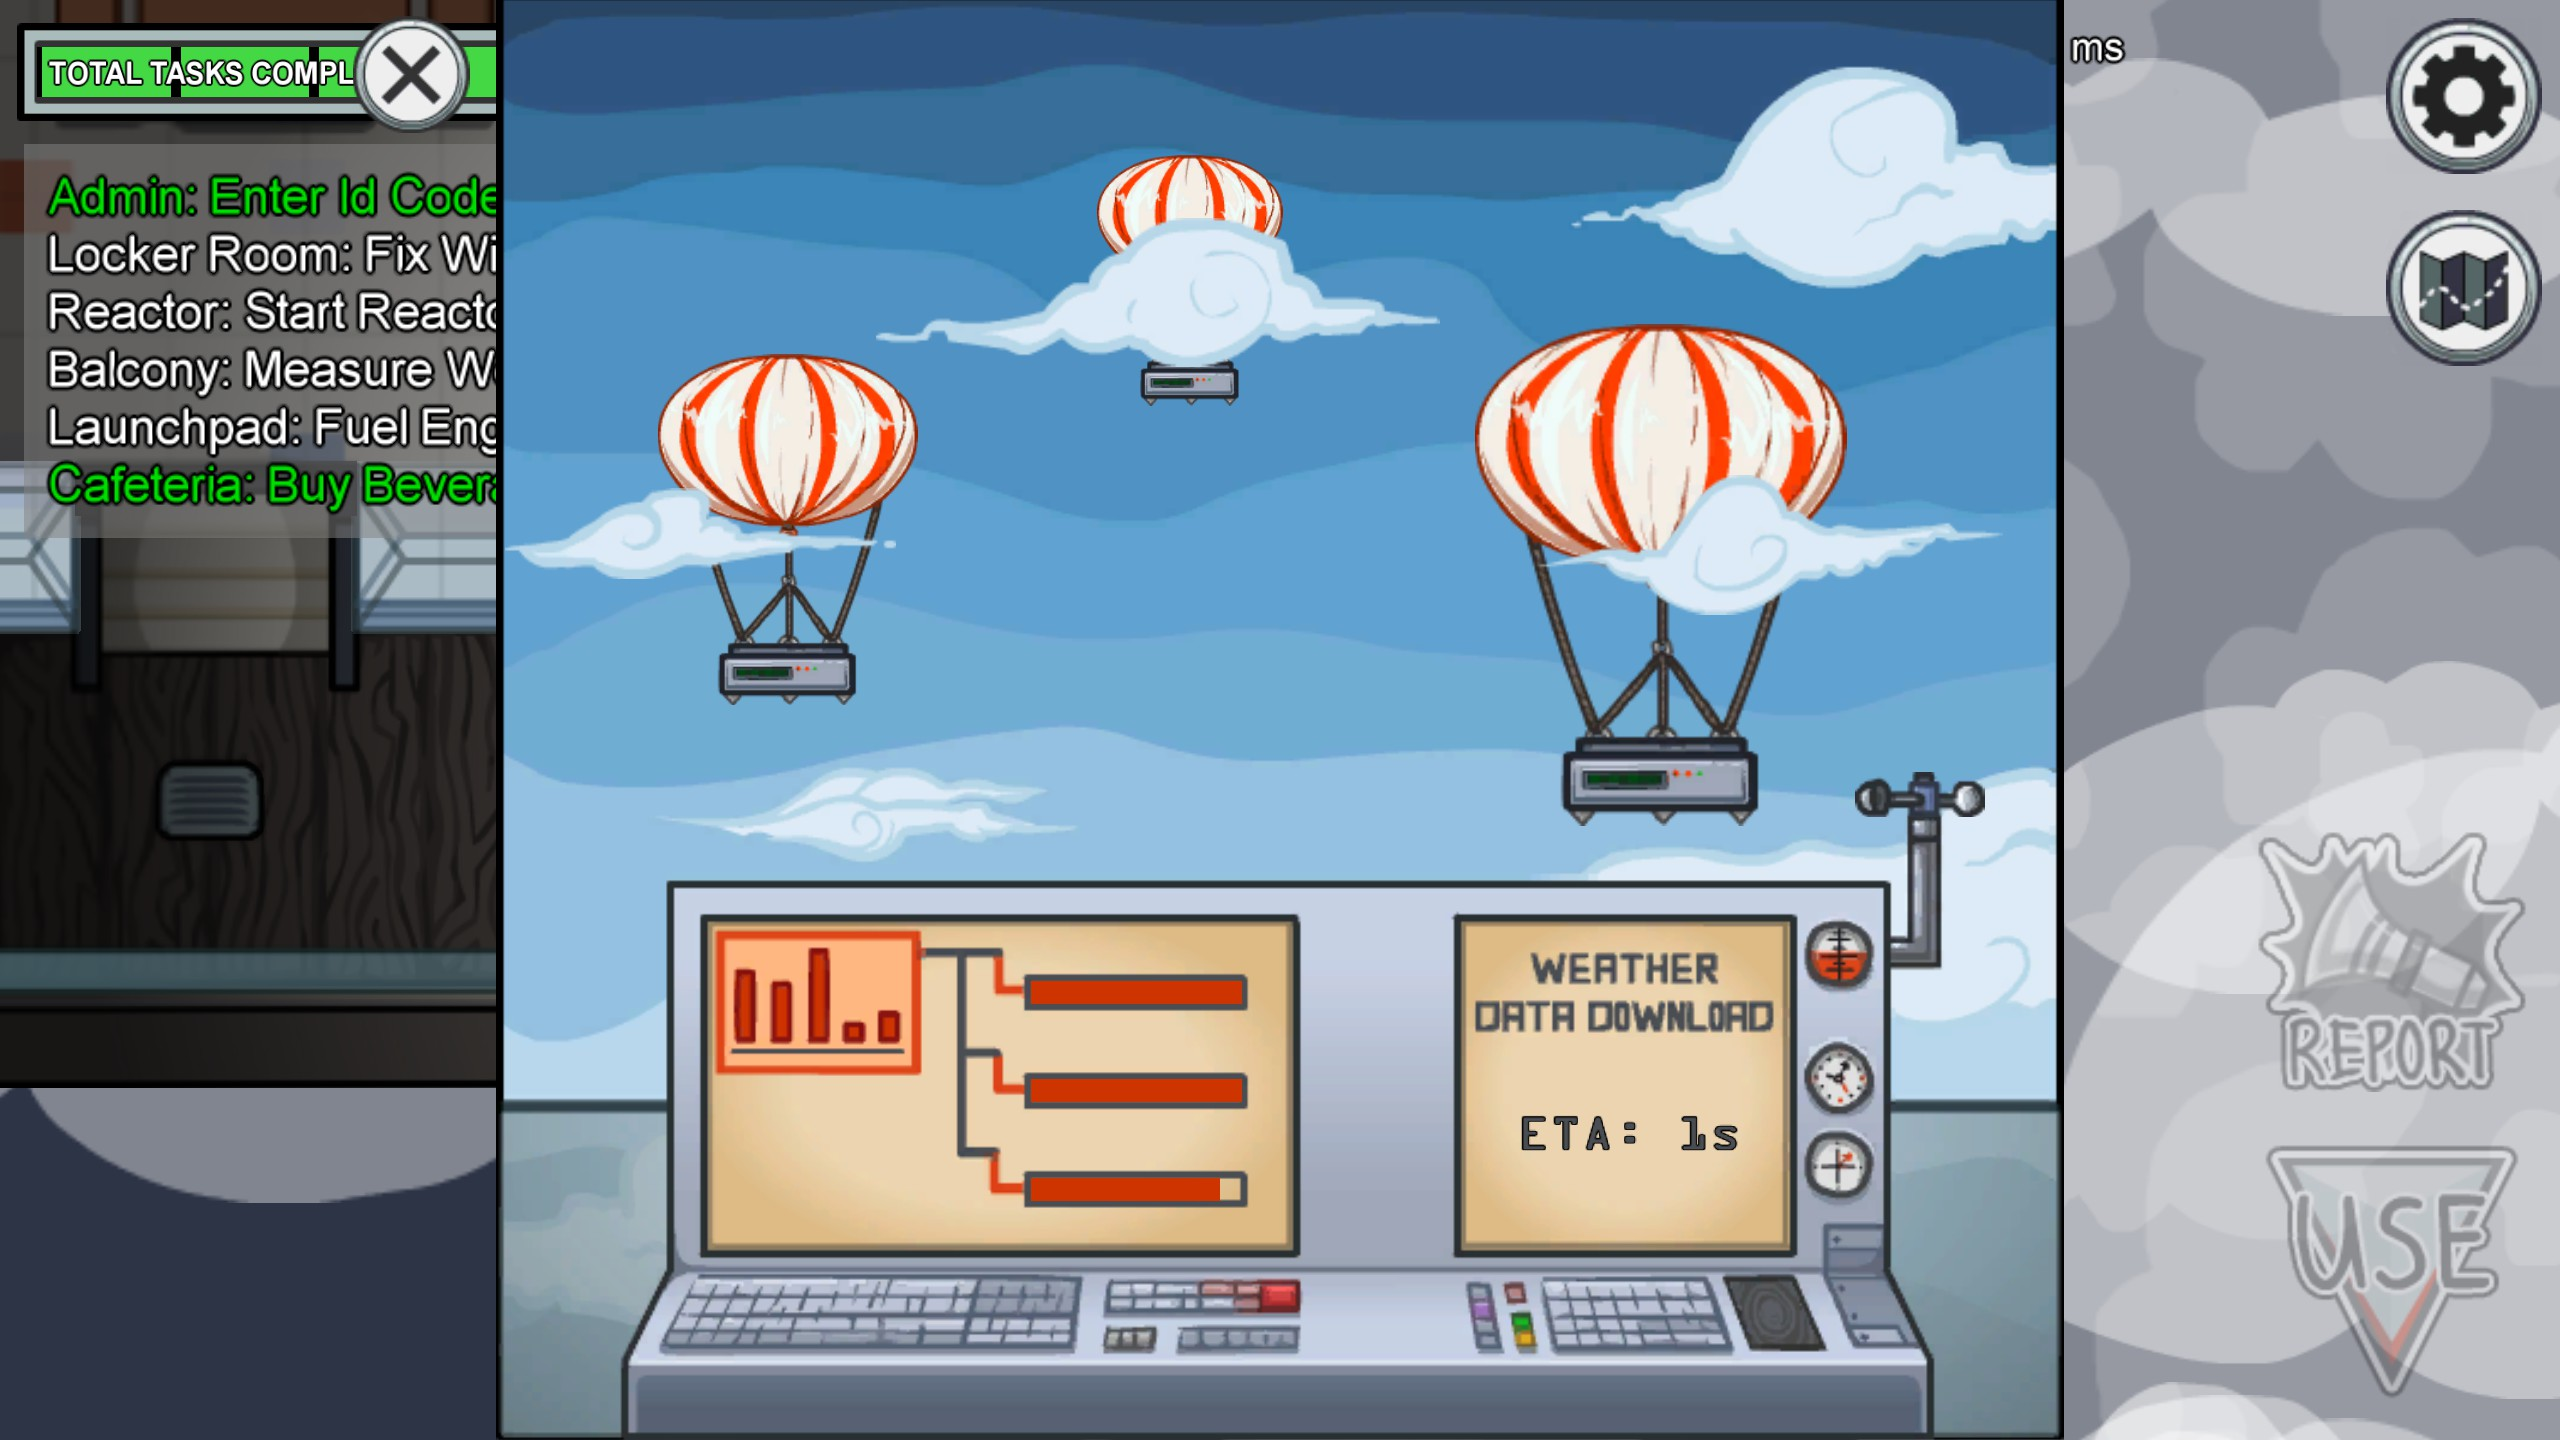 An Among Us screenshot. It shows a minigame. The screen has weather balloons that you need to download data from.